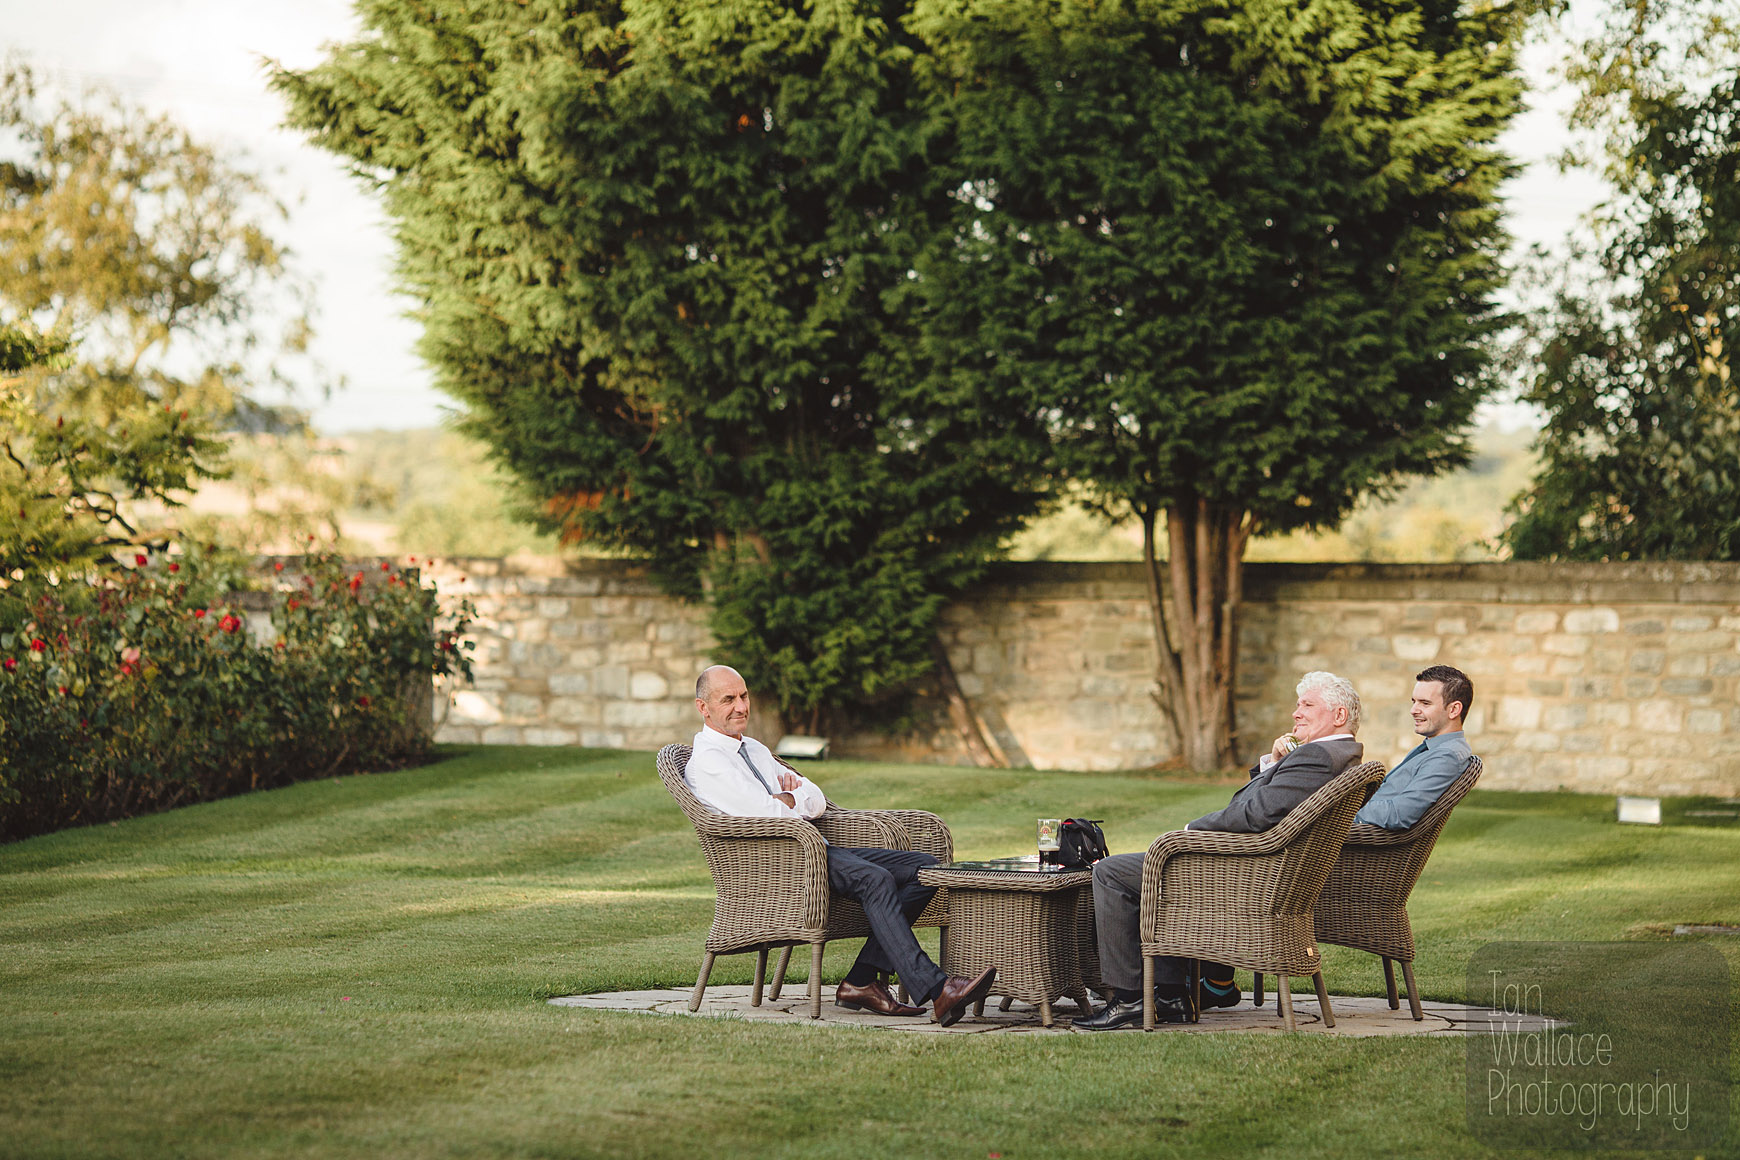 Guests relaxing in the beautiful grounds of Hazlewood Castle